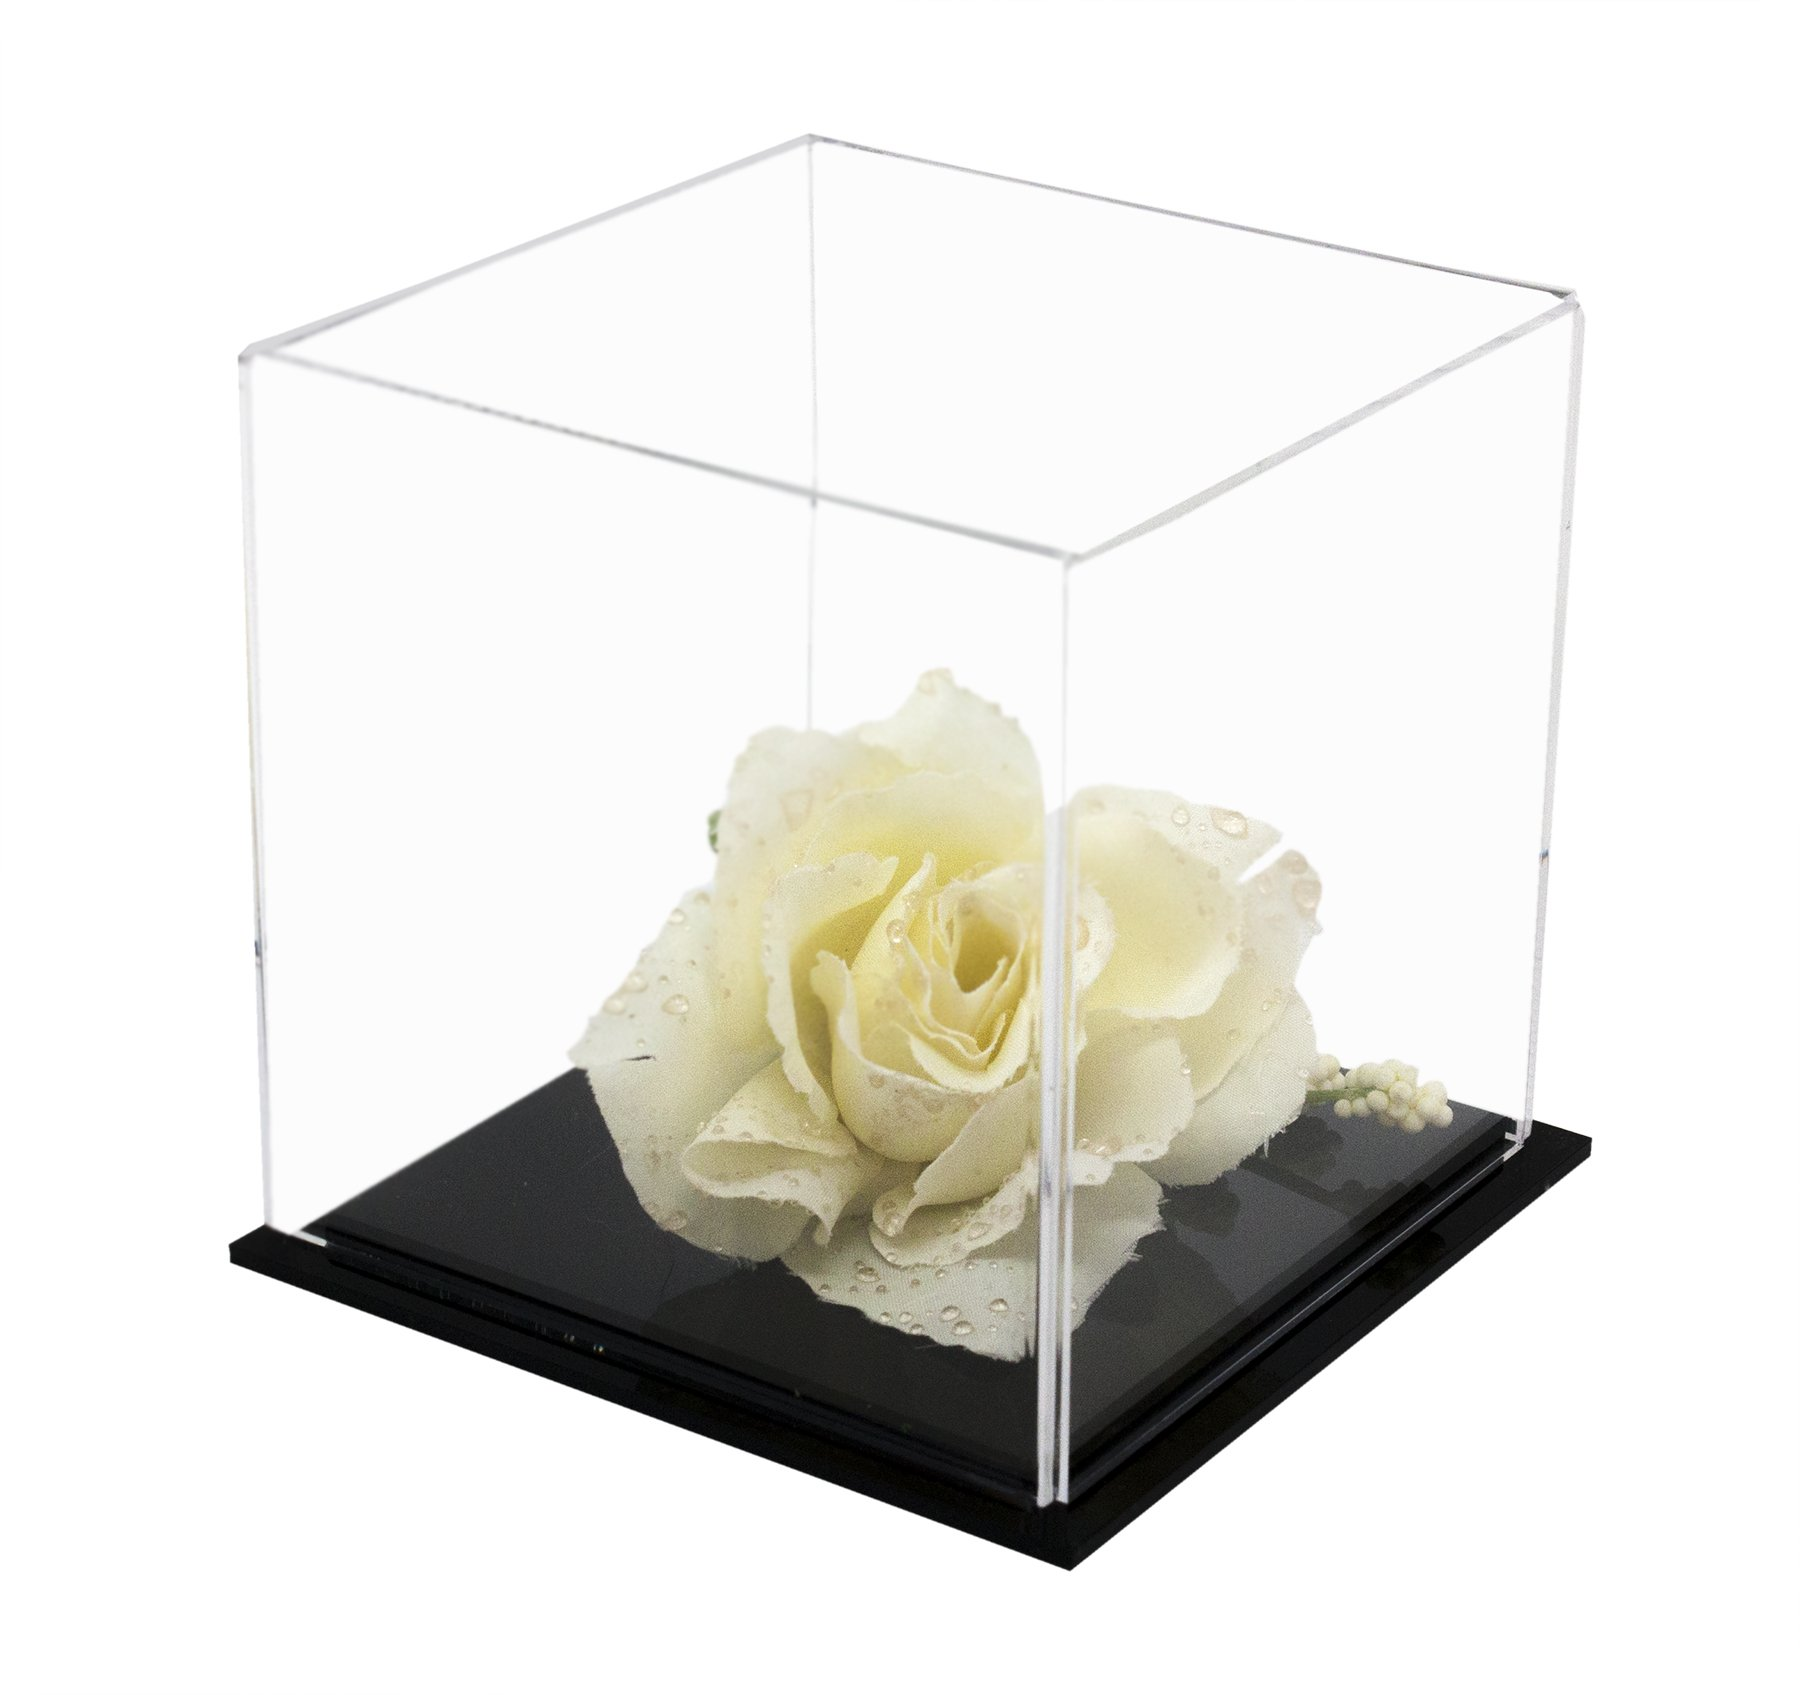 Versatile Acrylic Display Case, Cube, Dust Cover and Riser 4'' x 4'' x 4'' (A057-DS)